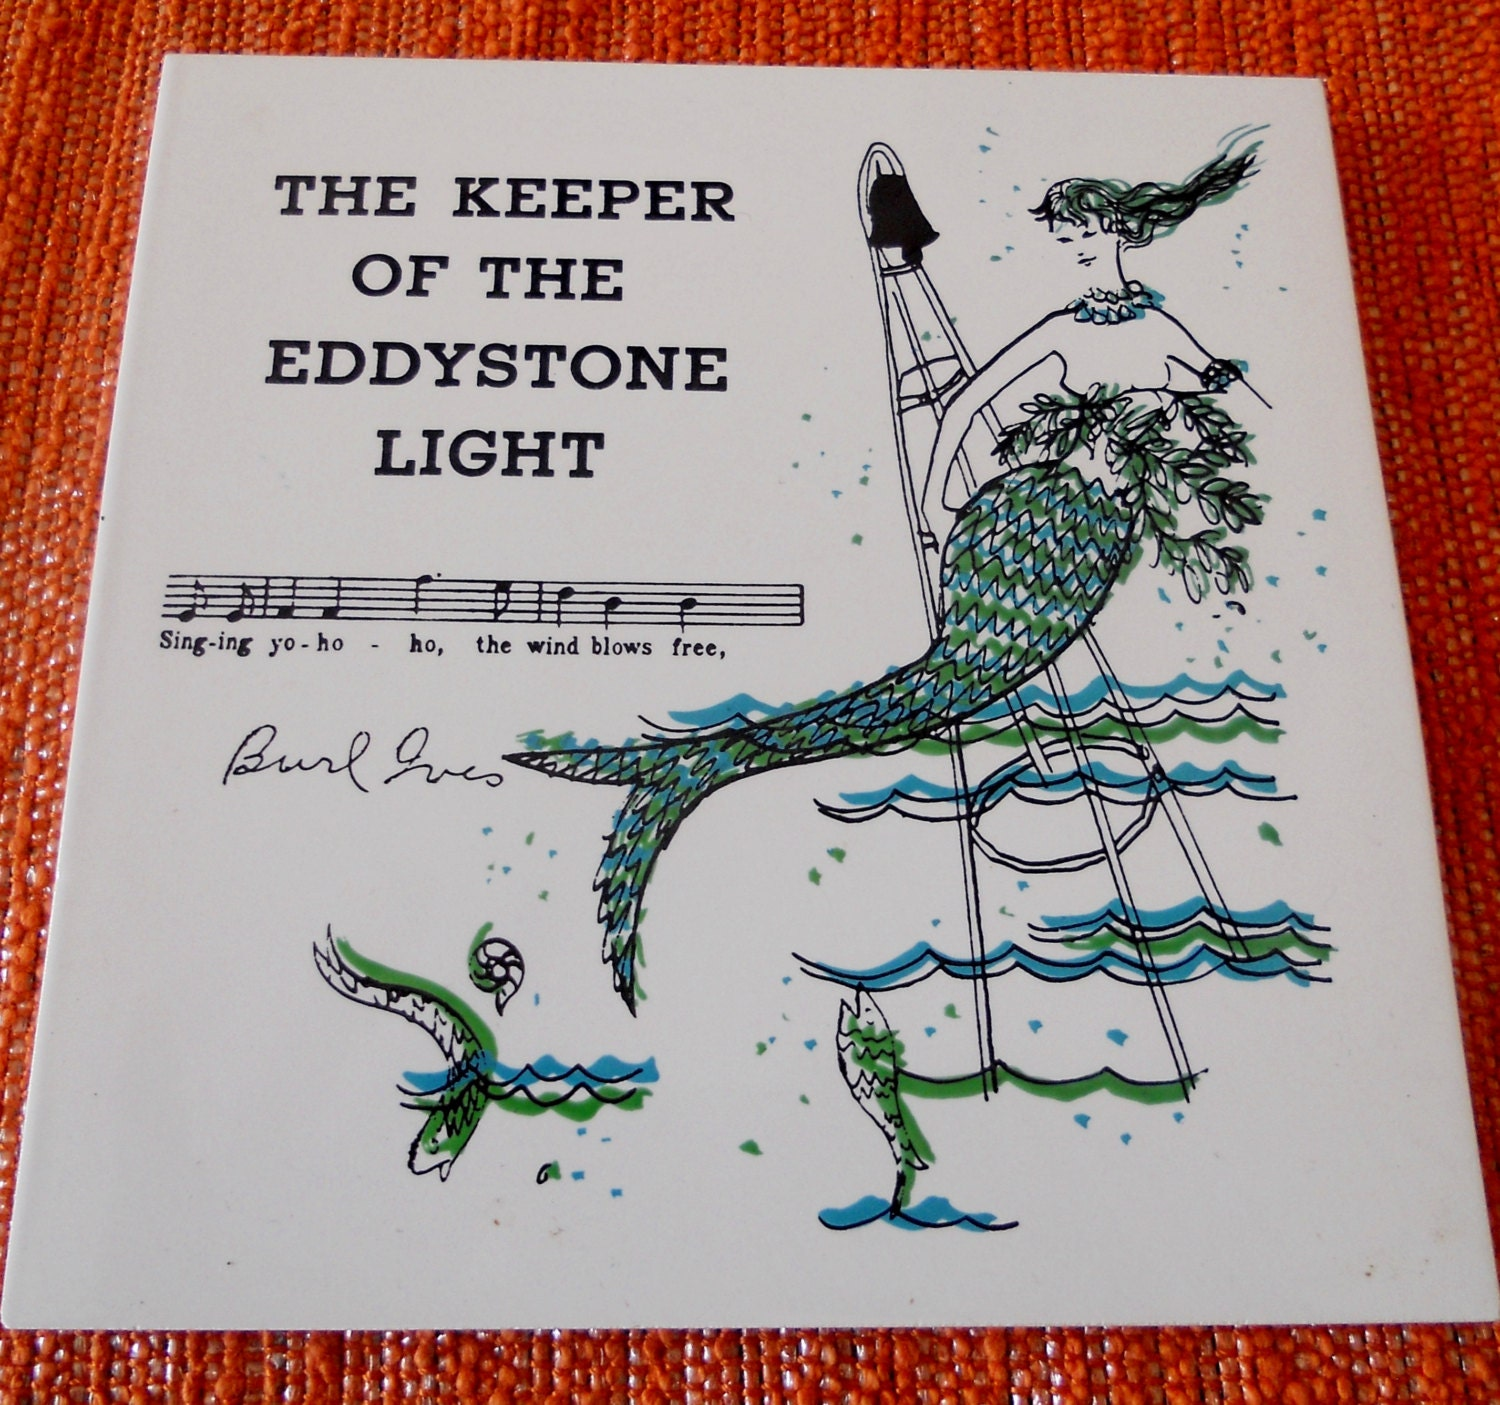 1960 Novelty Lighting : Vintage Novelty Tile 1960s: The Keeper of the by BackToThe60s